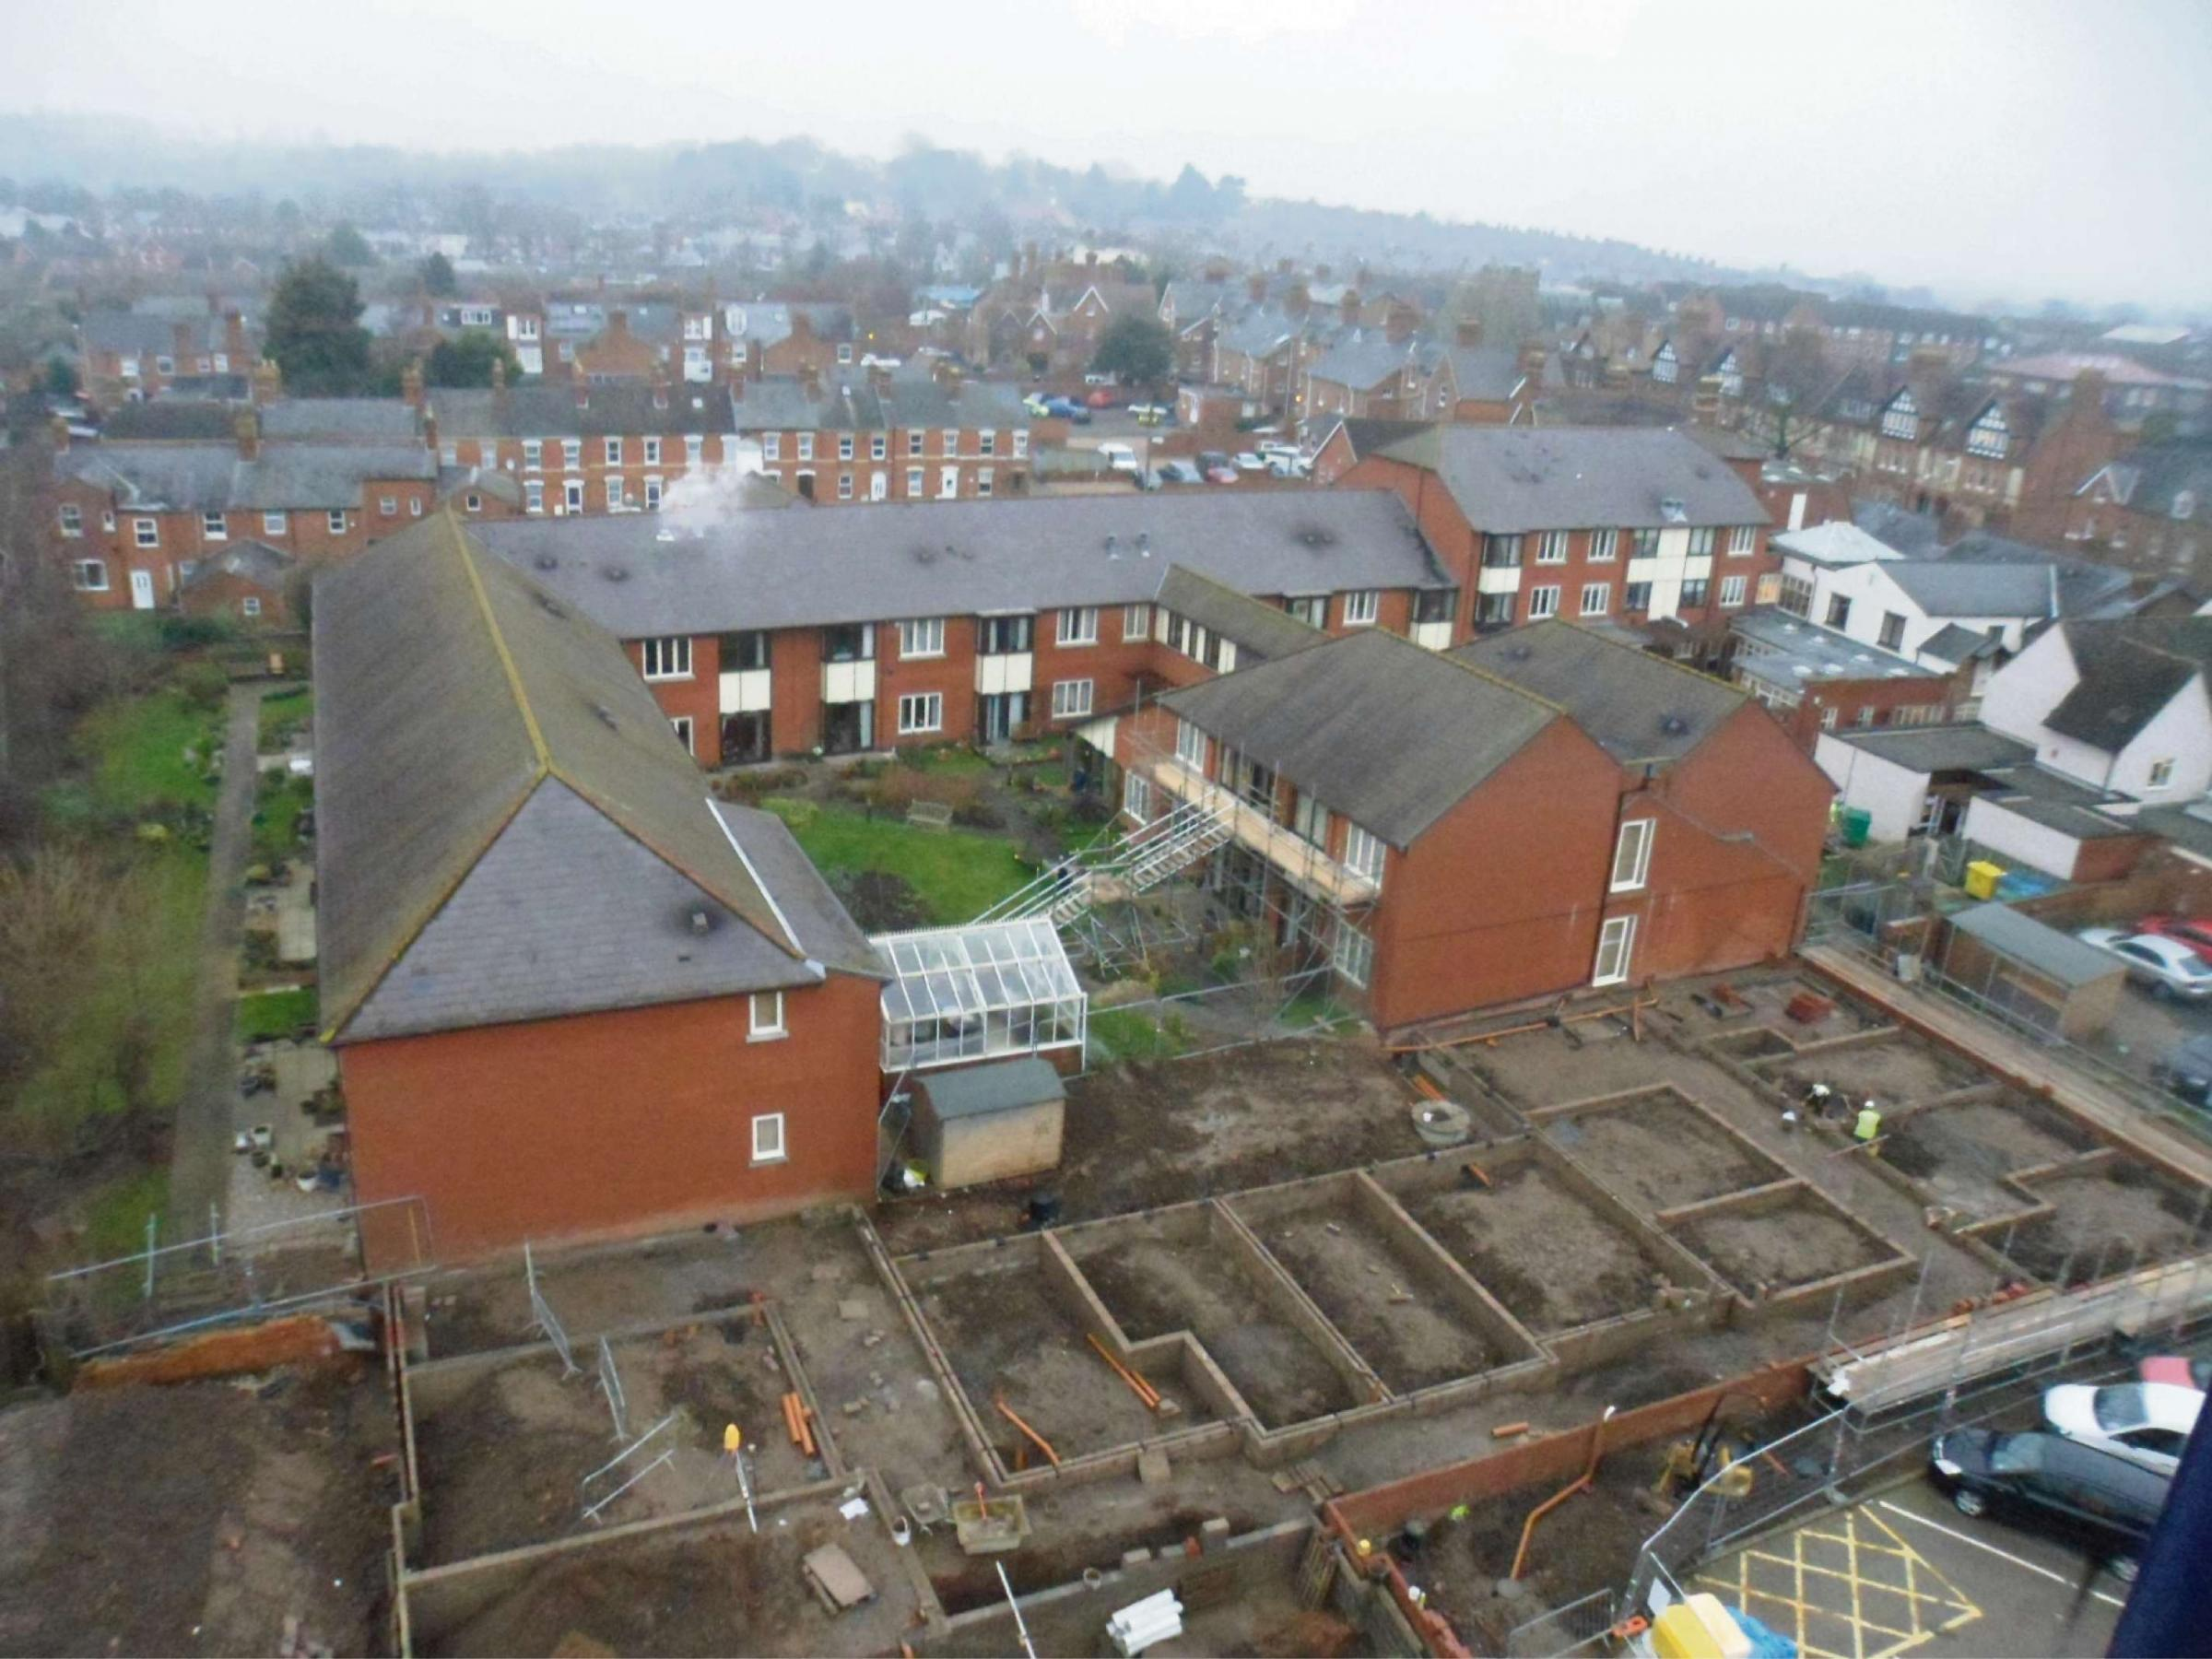 New development at Yate's Court in Evesham